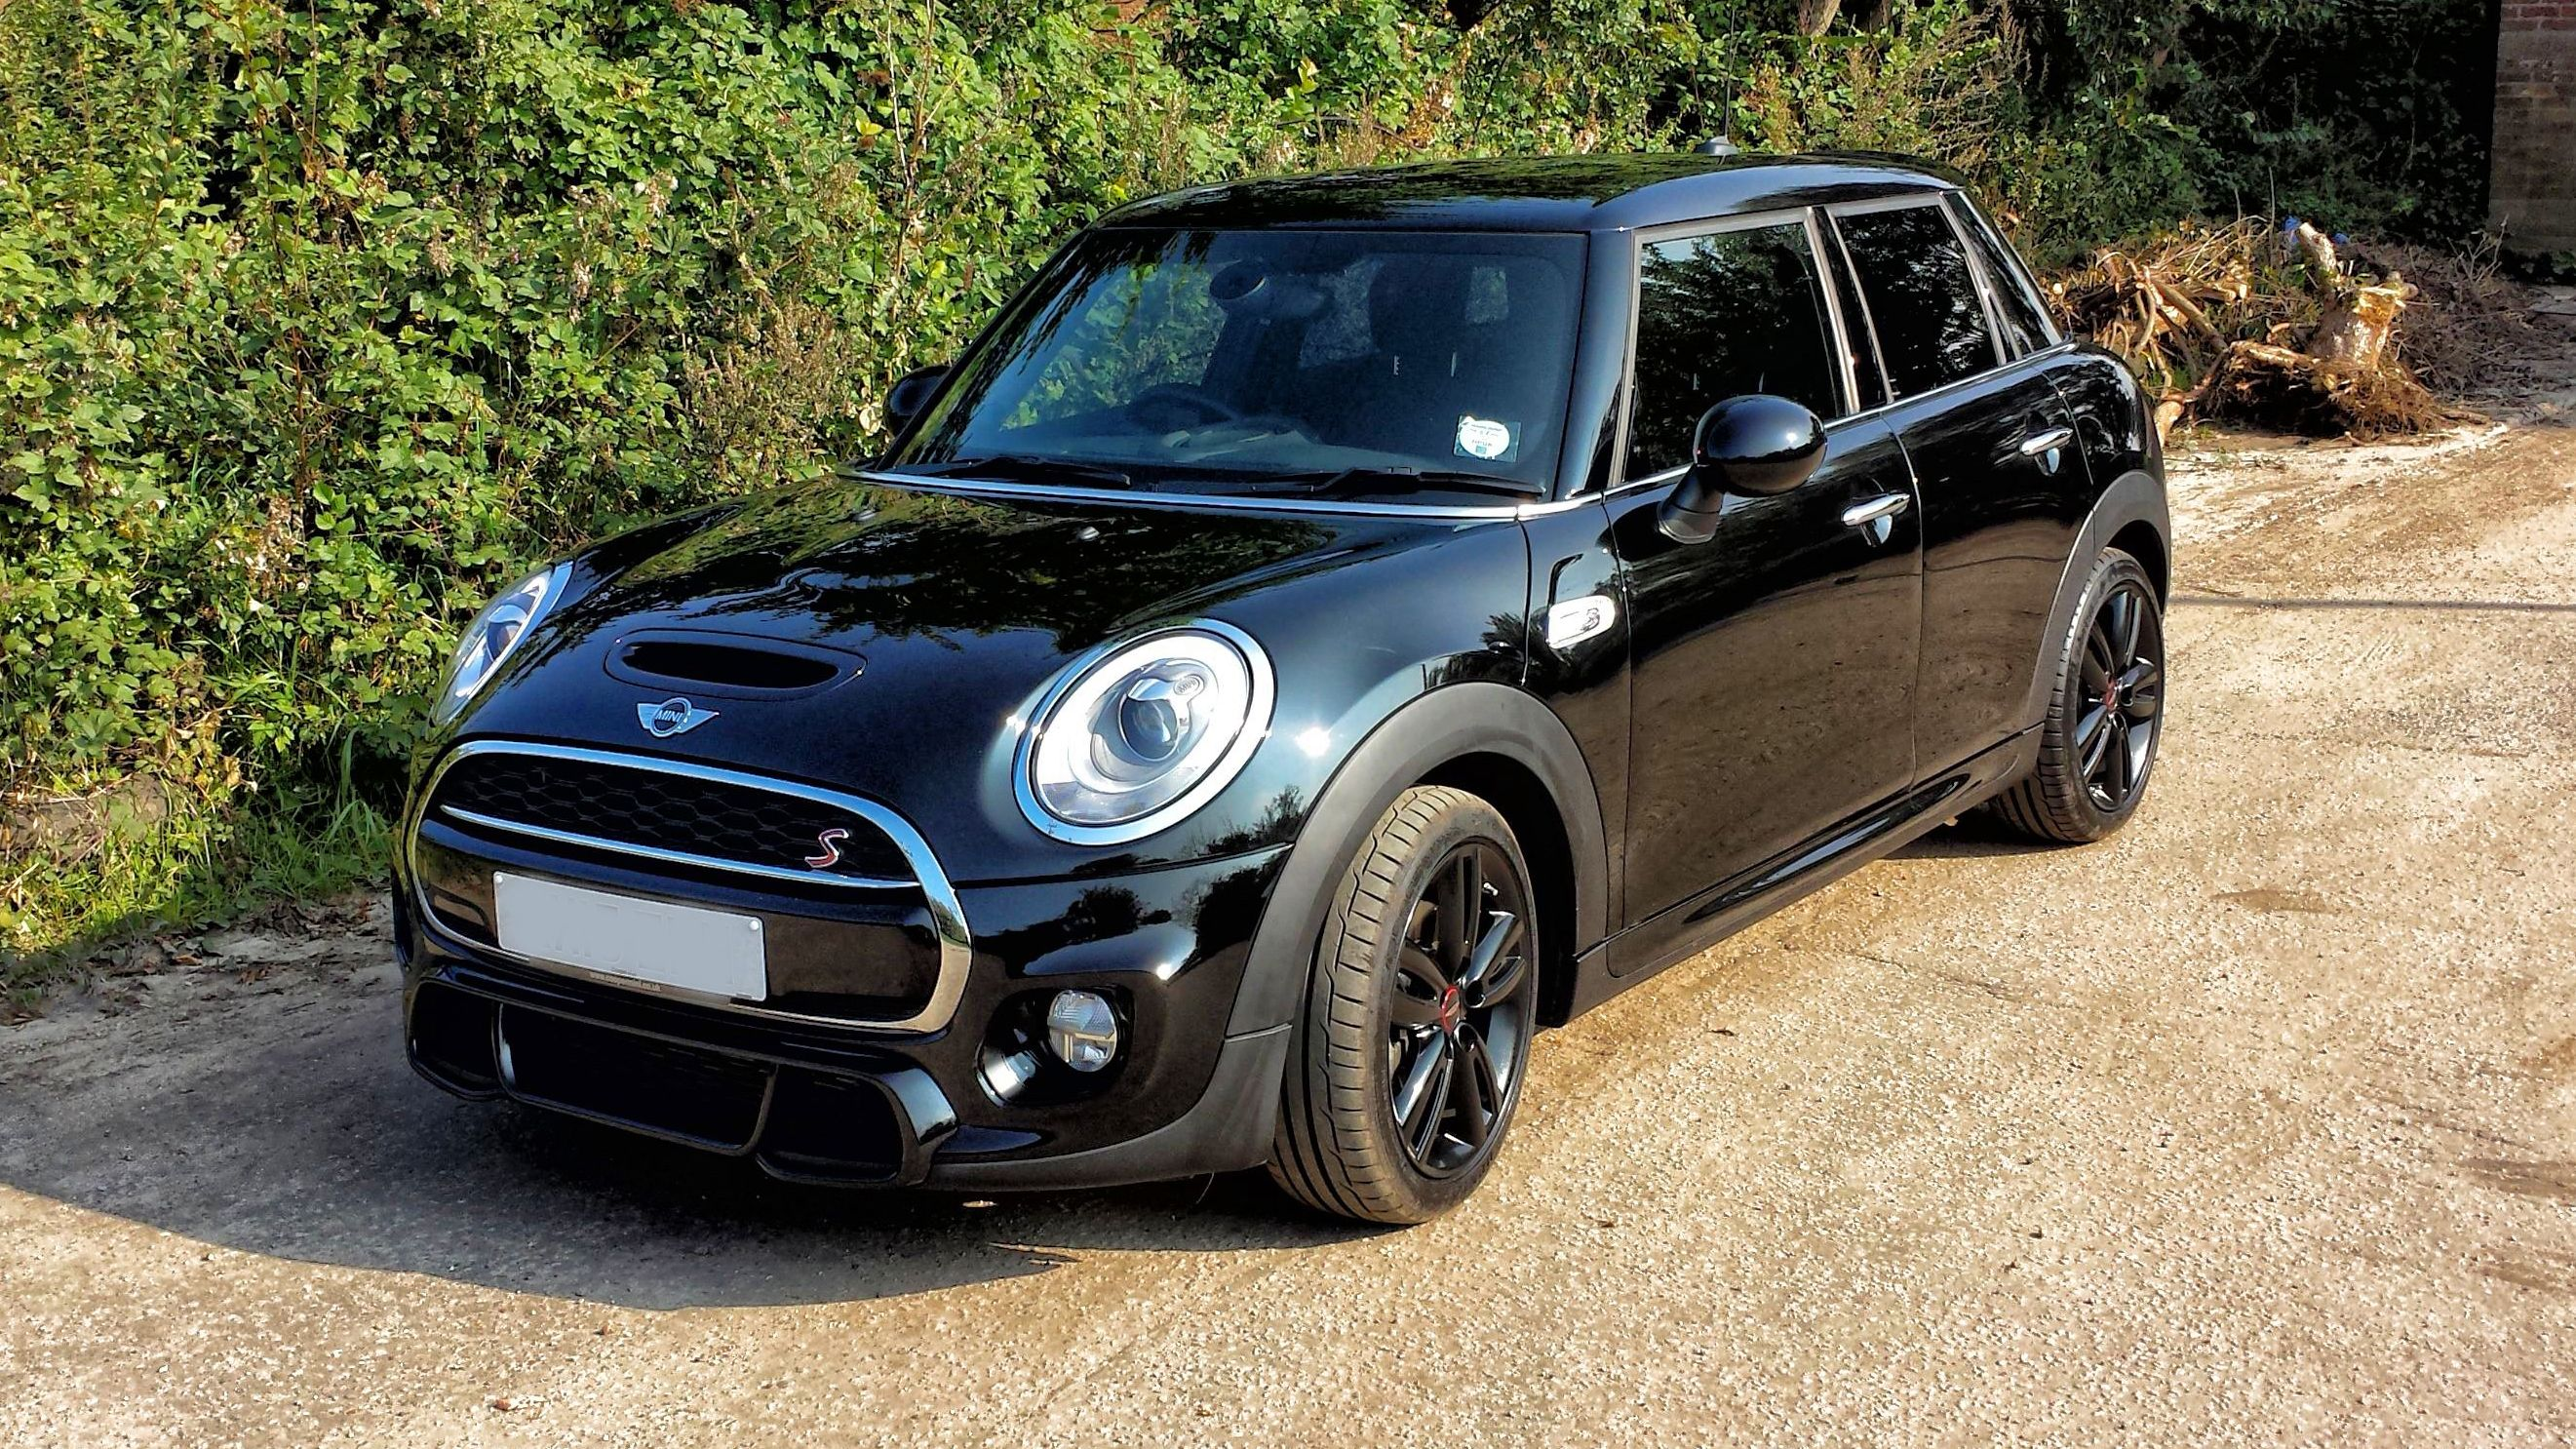 Mini Cooper S 5 door with window tint Taken with Samsung Galaxy S4